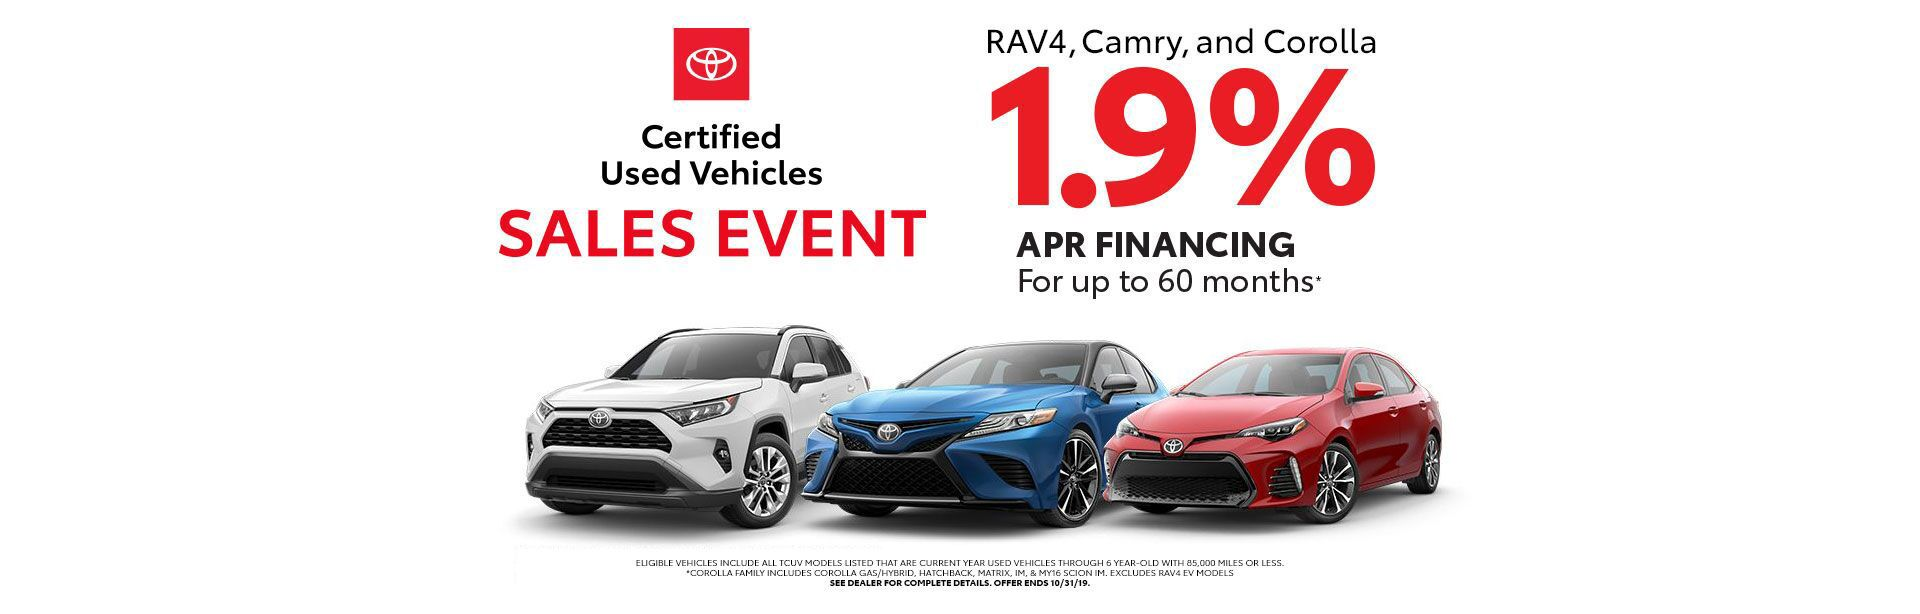 Certified Used Vehicles Sales Event